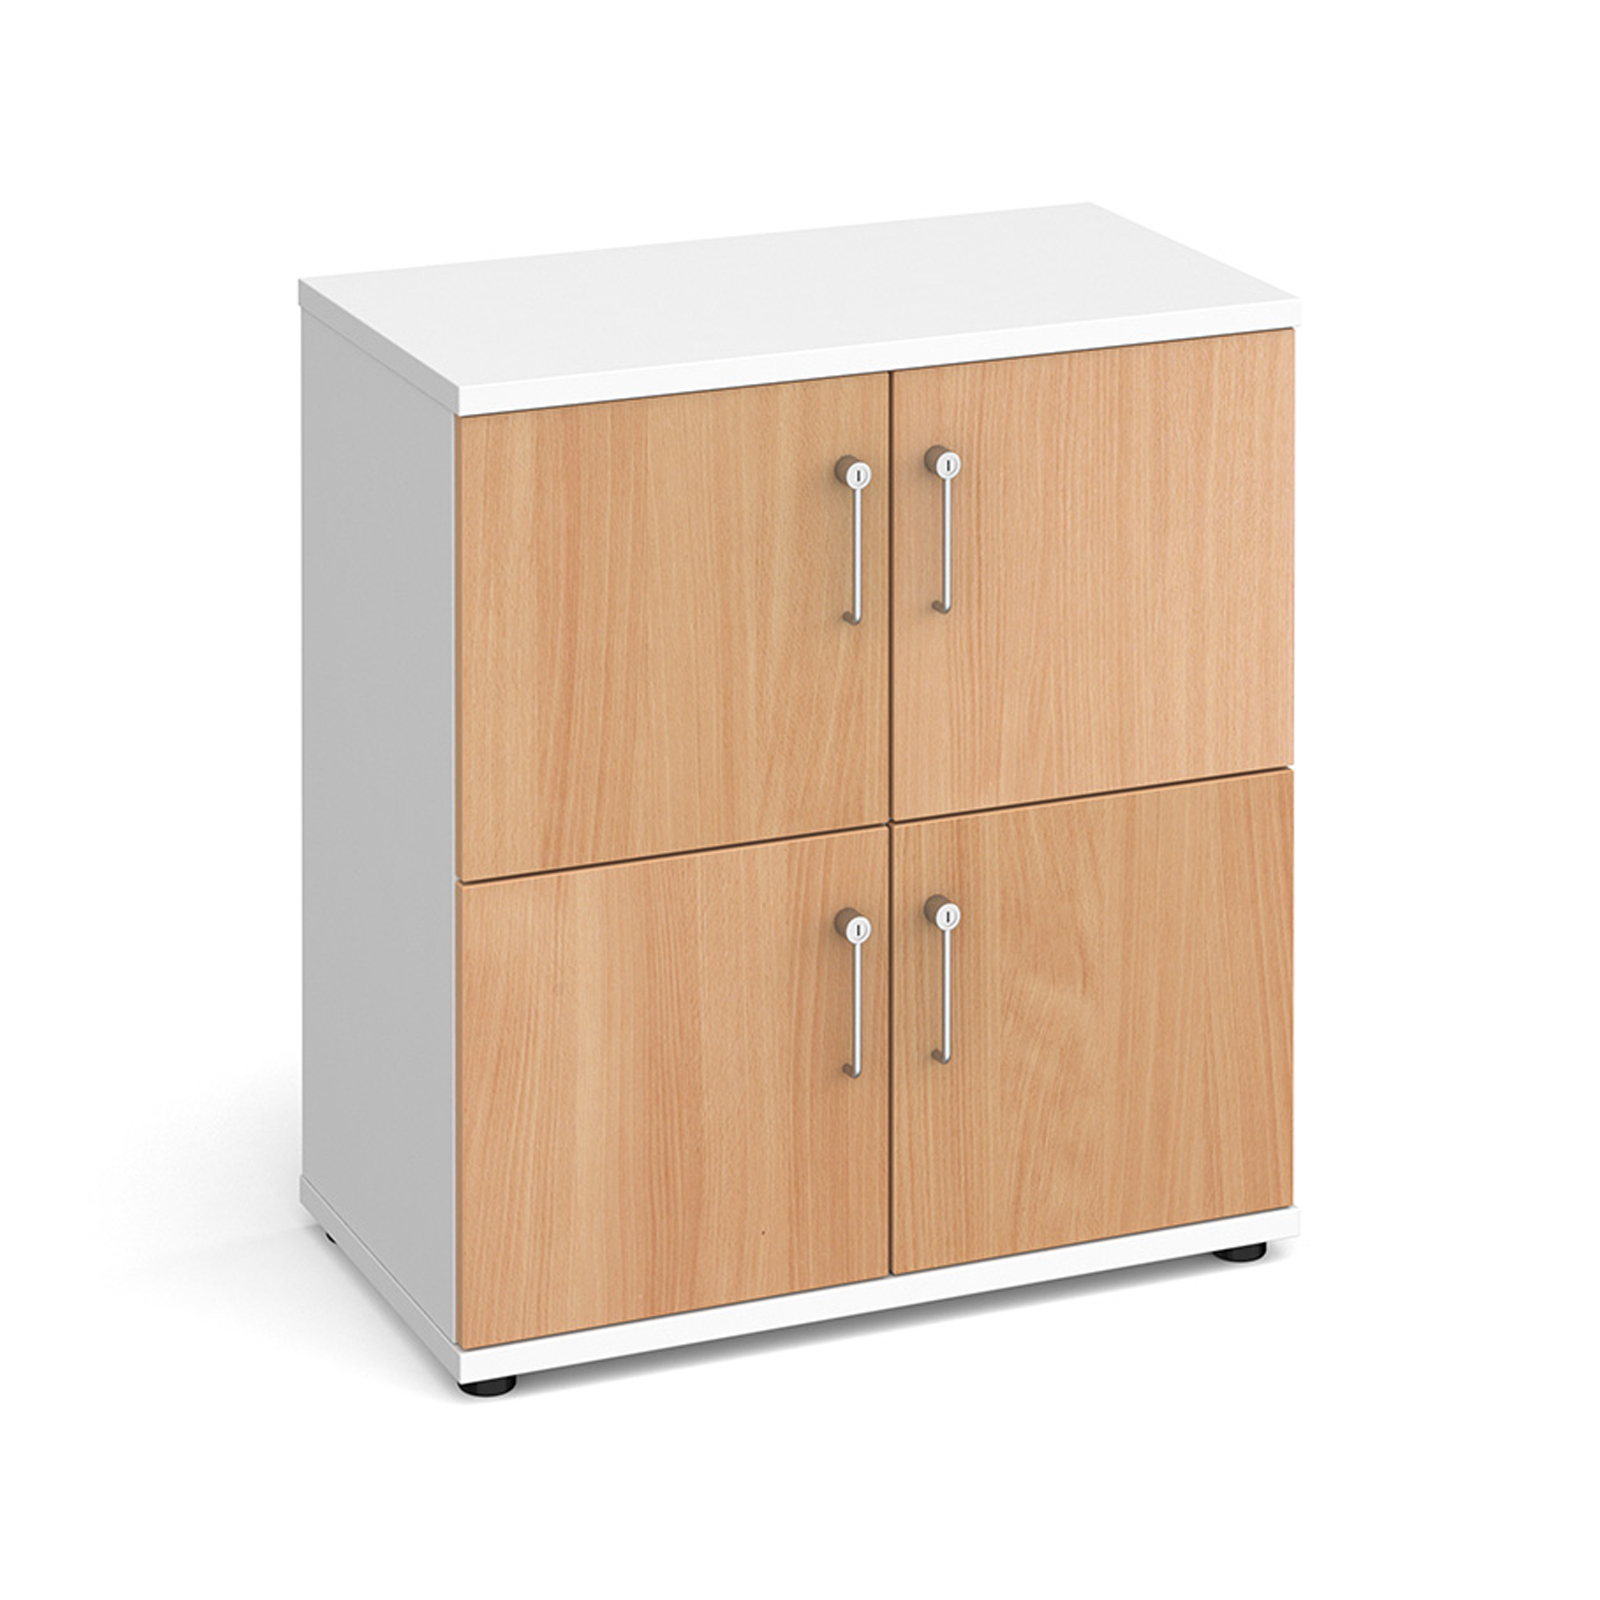 Up To 1200mm High Wooden storage lockers